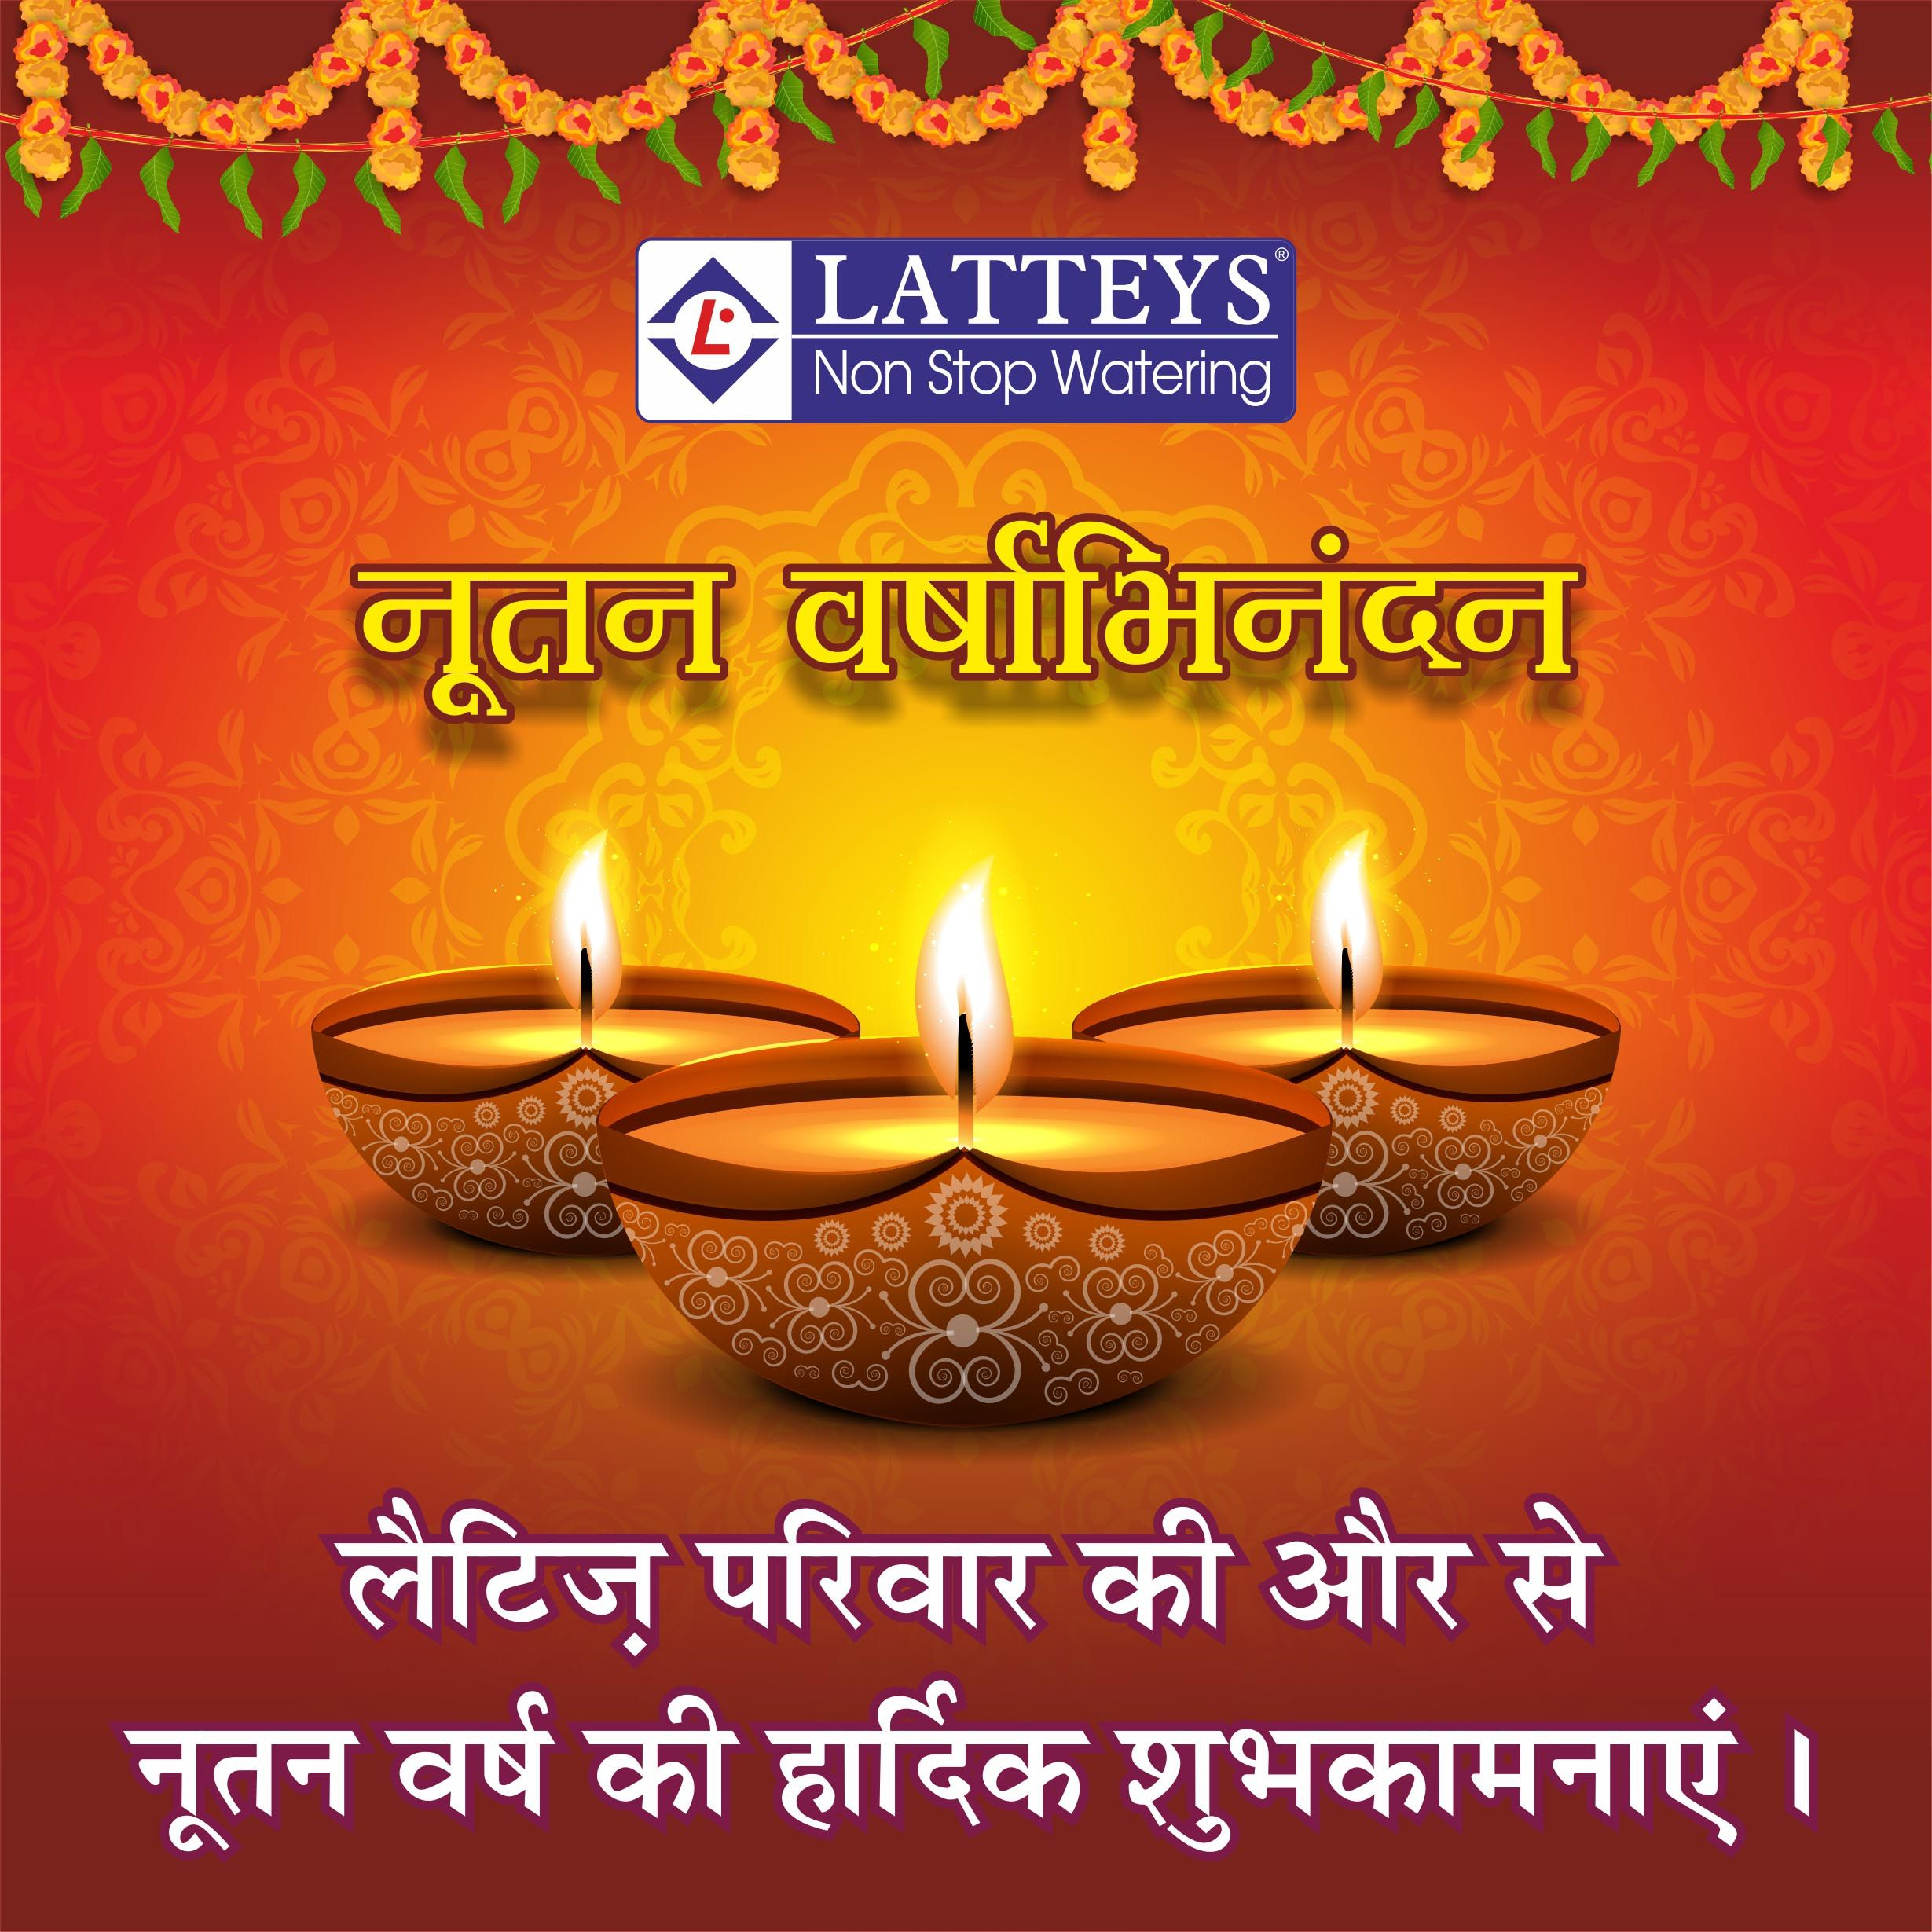 Latteys Industries Limited Team Wishes All Of You A Joyous Happy